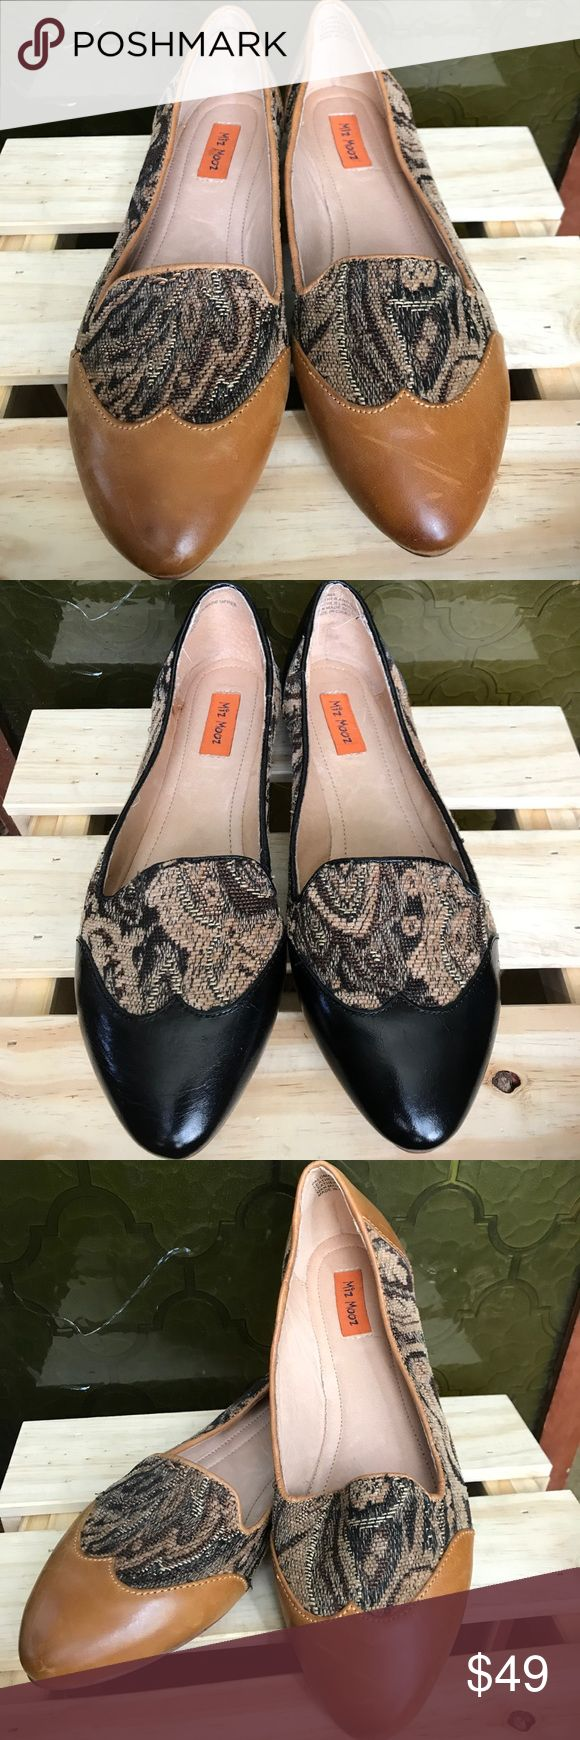 Miz Mooz 🌸BOGO🌸 Wingtip Leather Paloma Flats 7 🌷Springtime sale!🌷 Two pairs for the price of one. Never worn. Paloma flats by Miz Mooz. Size 7. Fits like a 6W-6.5. Hidden sliver wedge. Cushioned insole. Leather and embroidered exterior, leather interior, man made sole. Wingtip design. (Brown pair is slightly distressed) The most gorgeous bohemian flats, with an English Rose flair. Dress them up or down. 💁🏻🌹 Miz Mooz Shoes Flats & Loafers